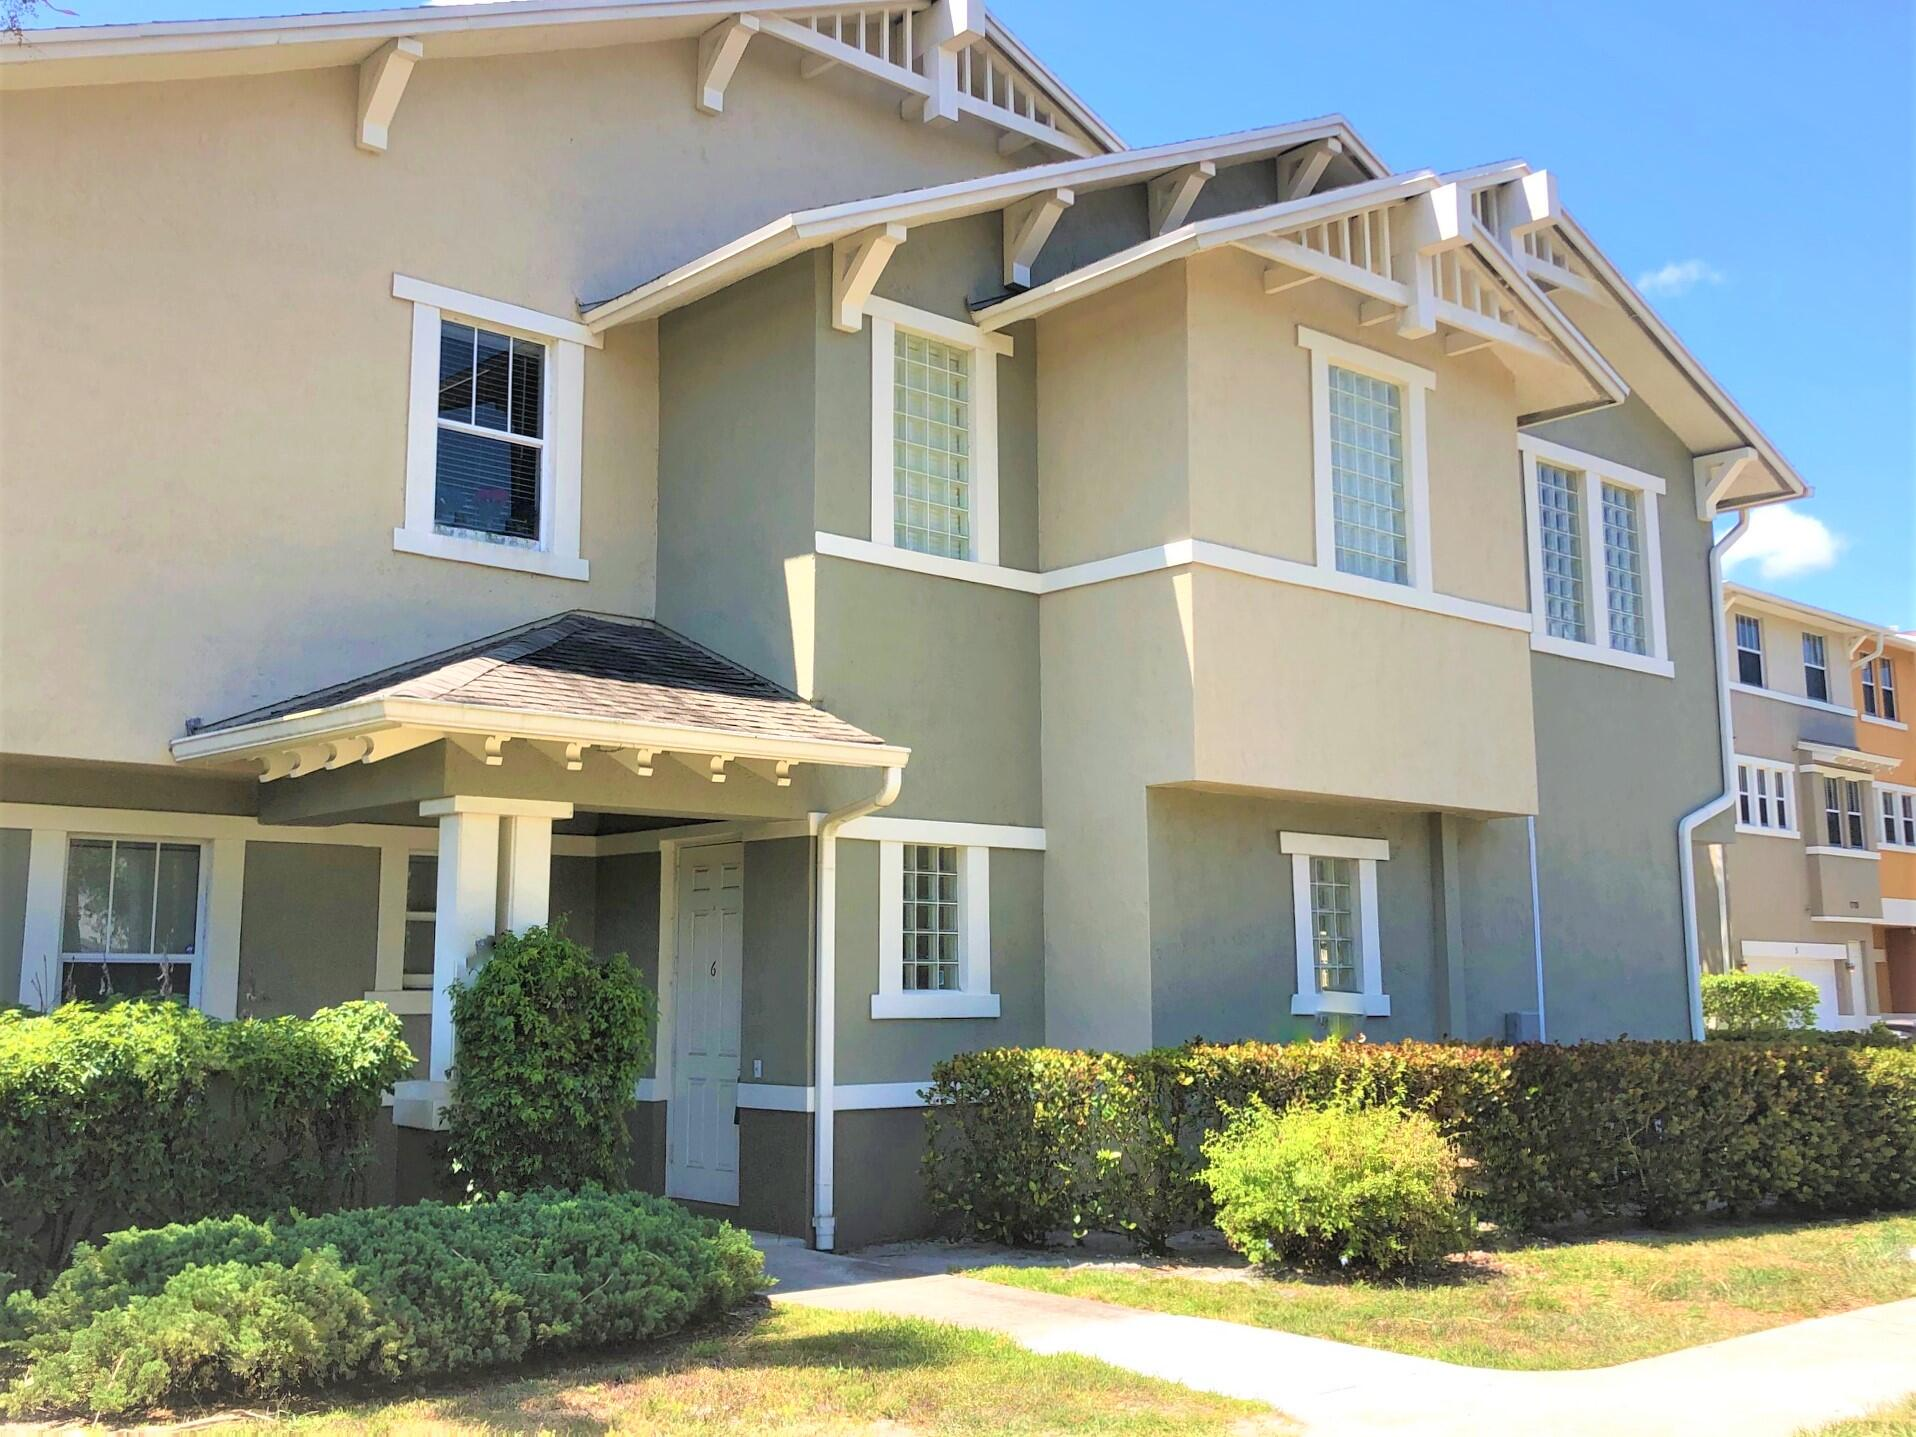 Home for sale in Cityside West Palm Beach Florida